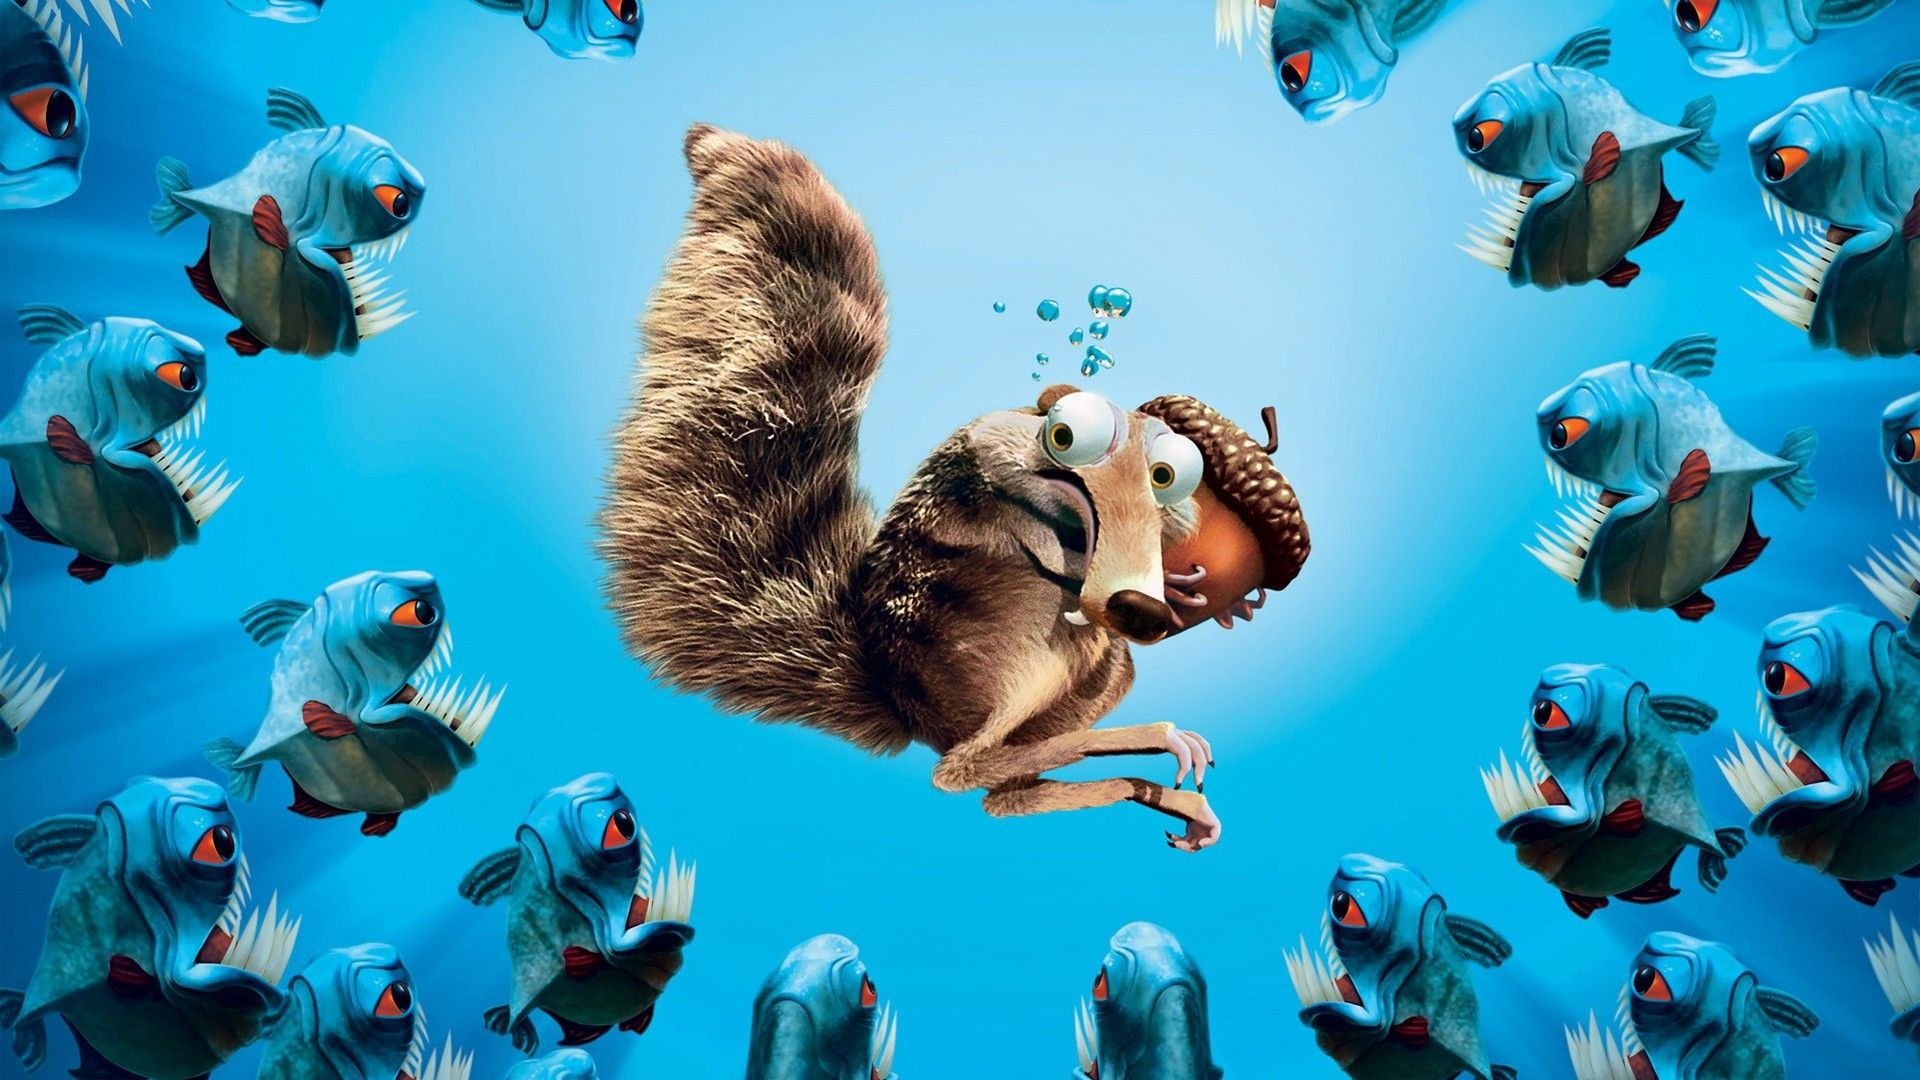 ice age 4 continental drift movie picture free download | movies/tv